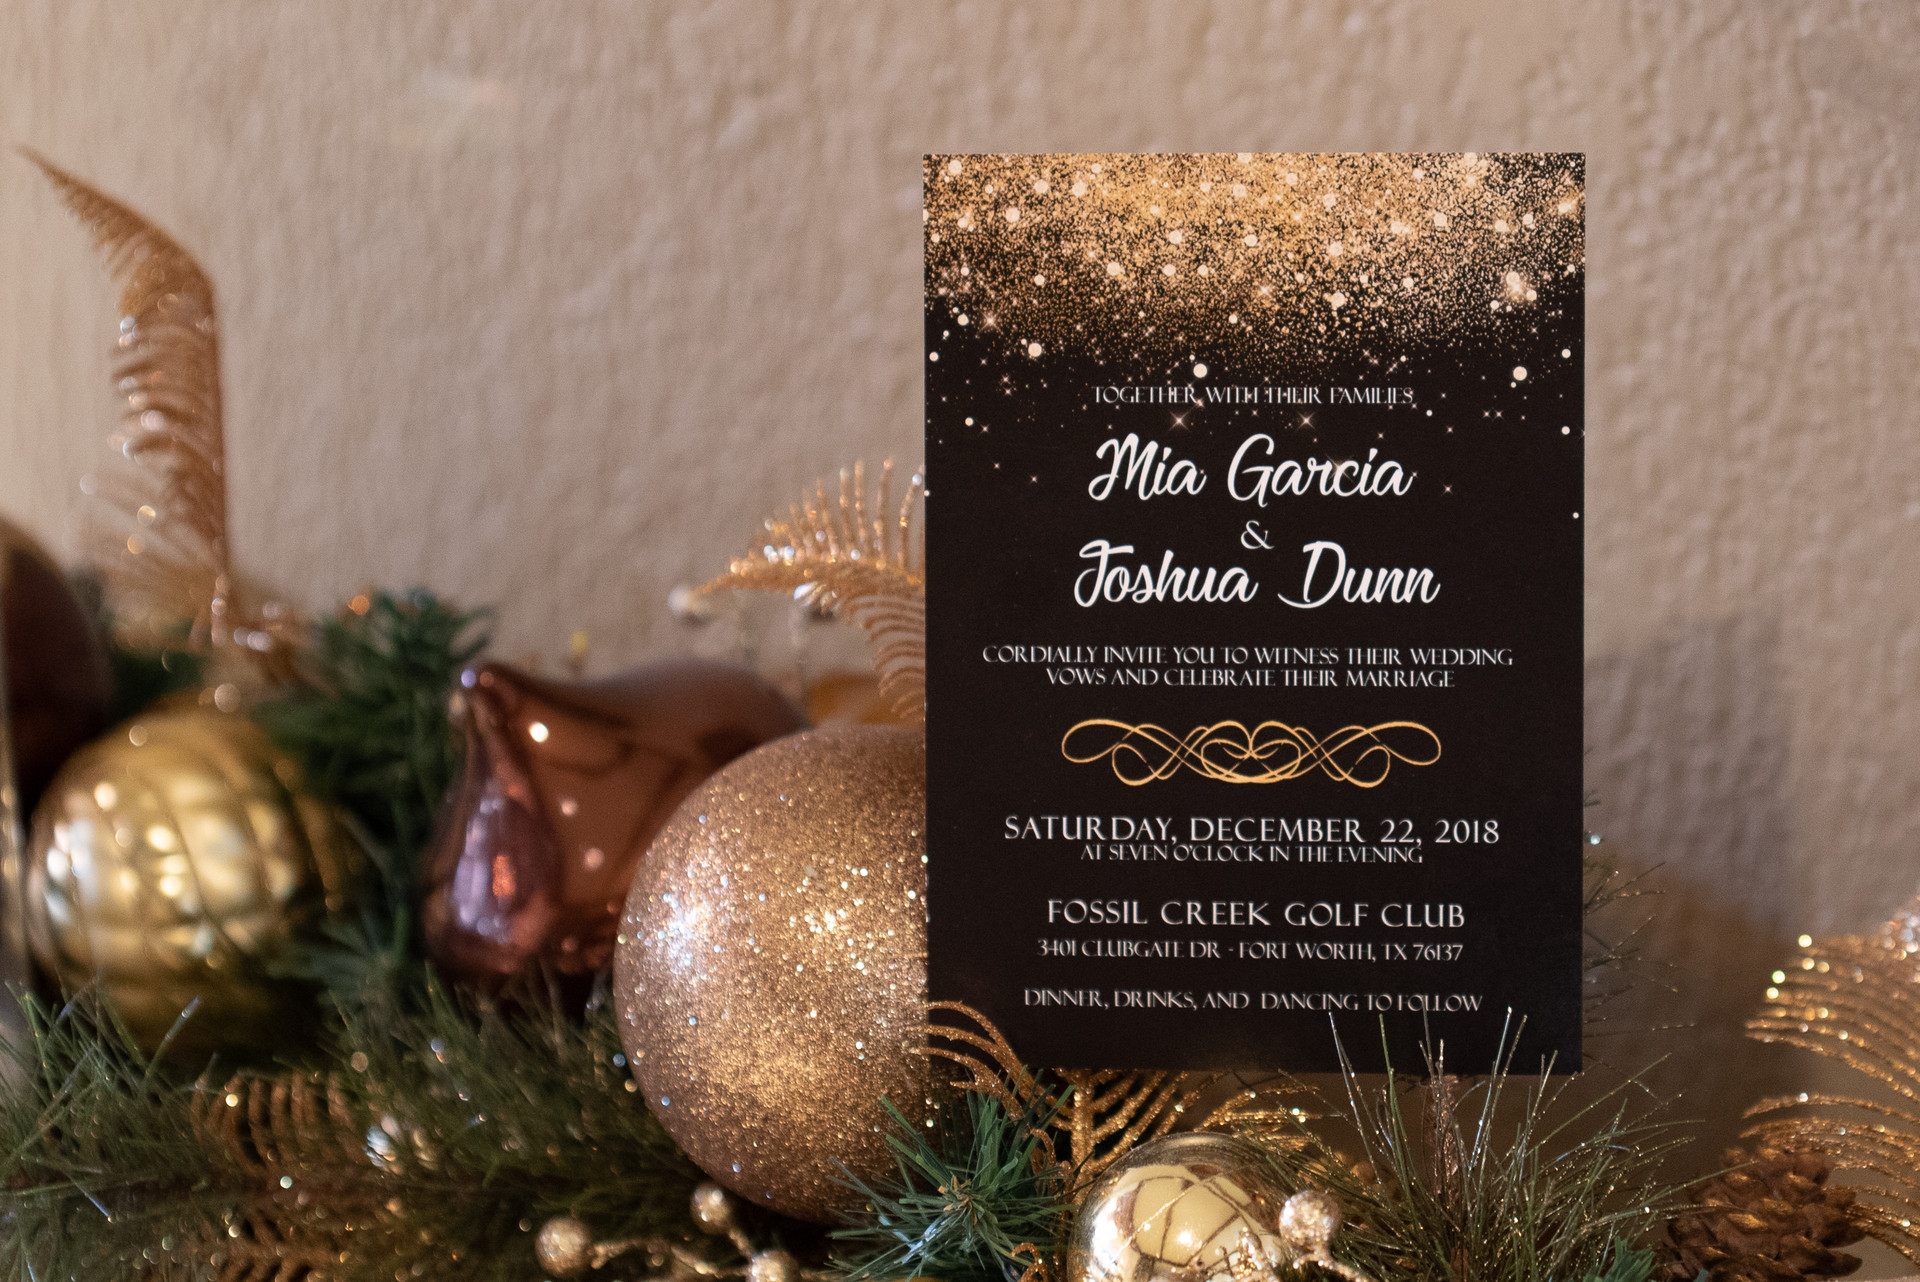 Dunn Wedding 12-22-18 028.jpg